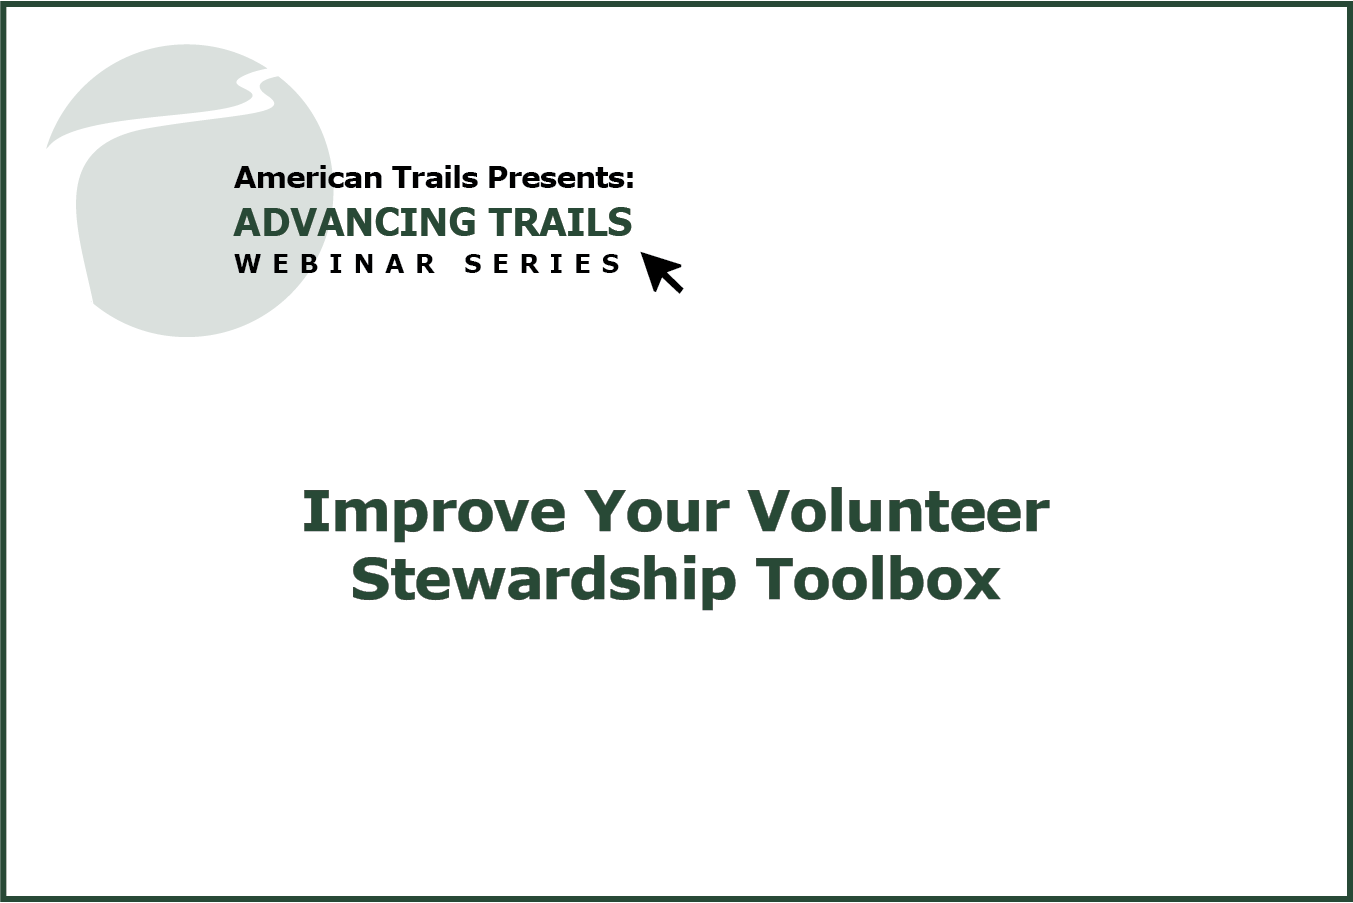 Improve Your Volunteer Stewardship Toolbox